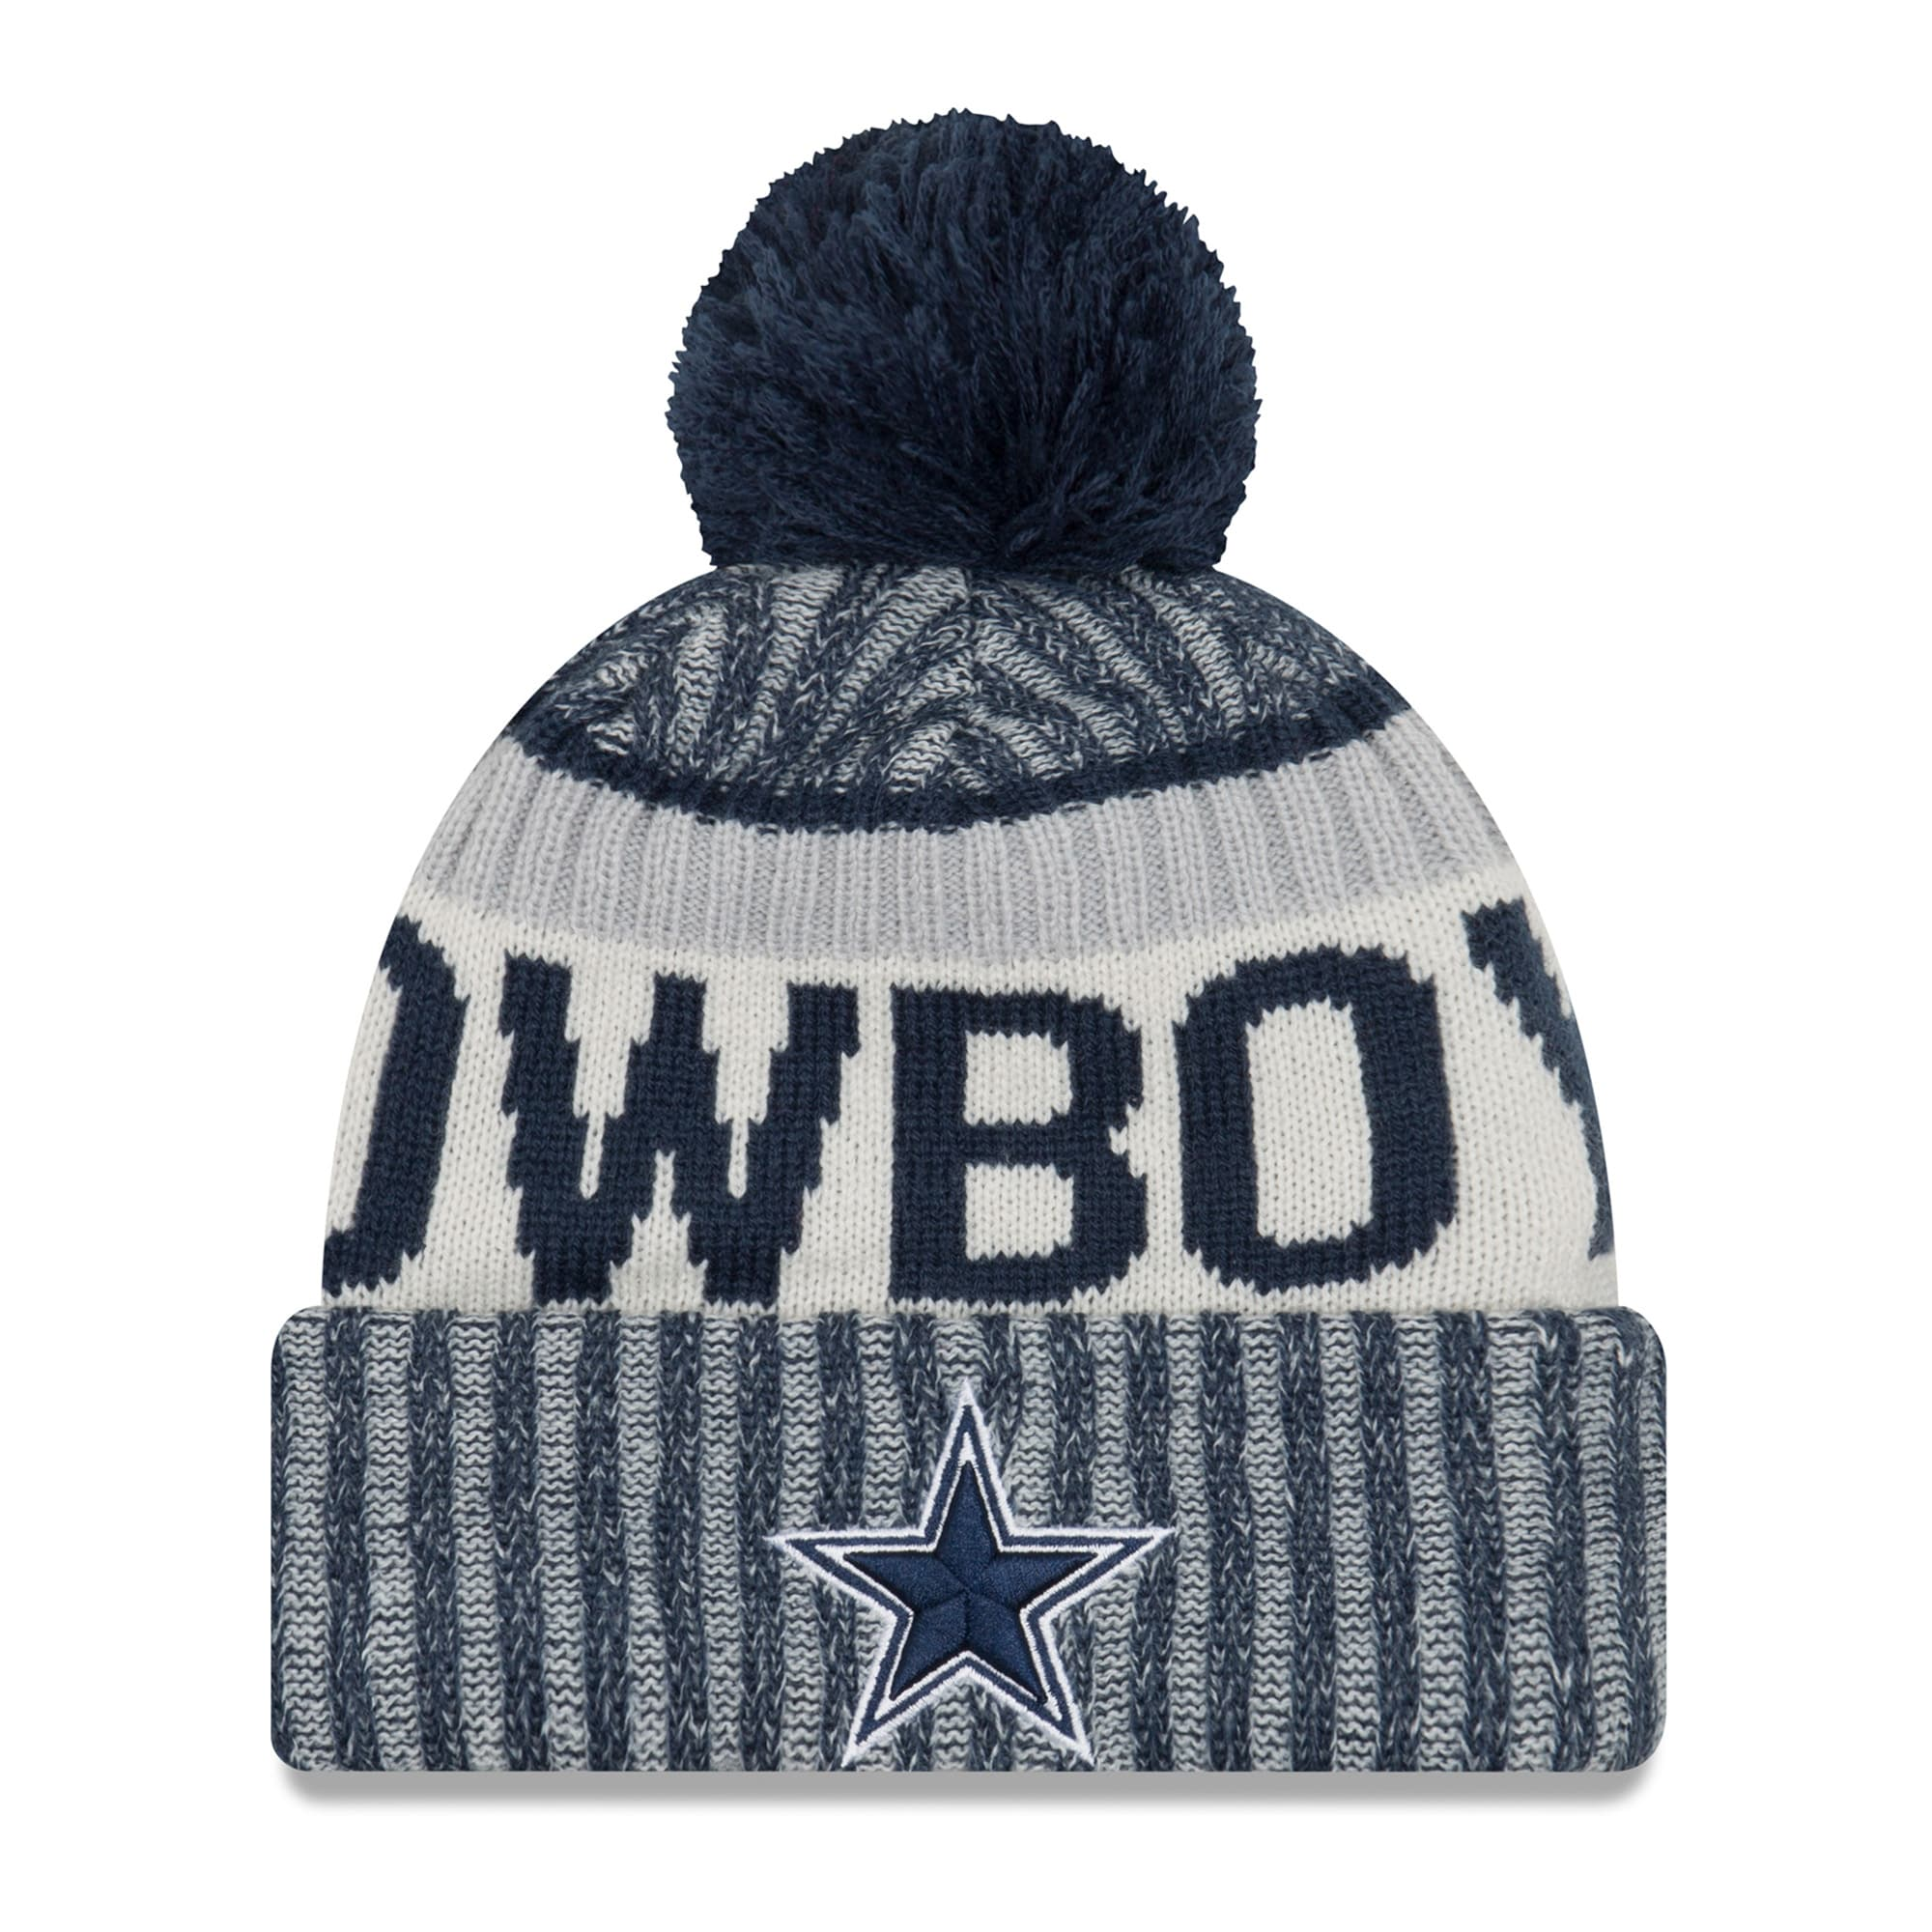 Dallas Cowboys New Era Youth 2017 Sideline Official Sport Knit Hat - Navy